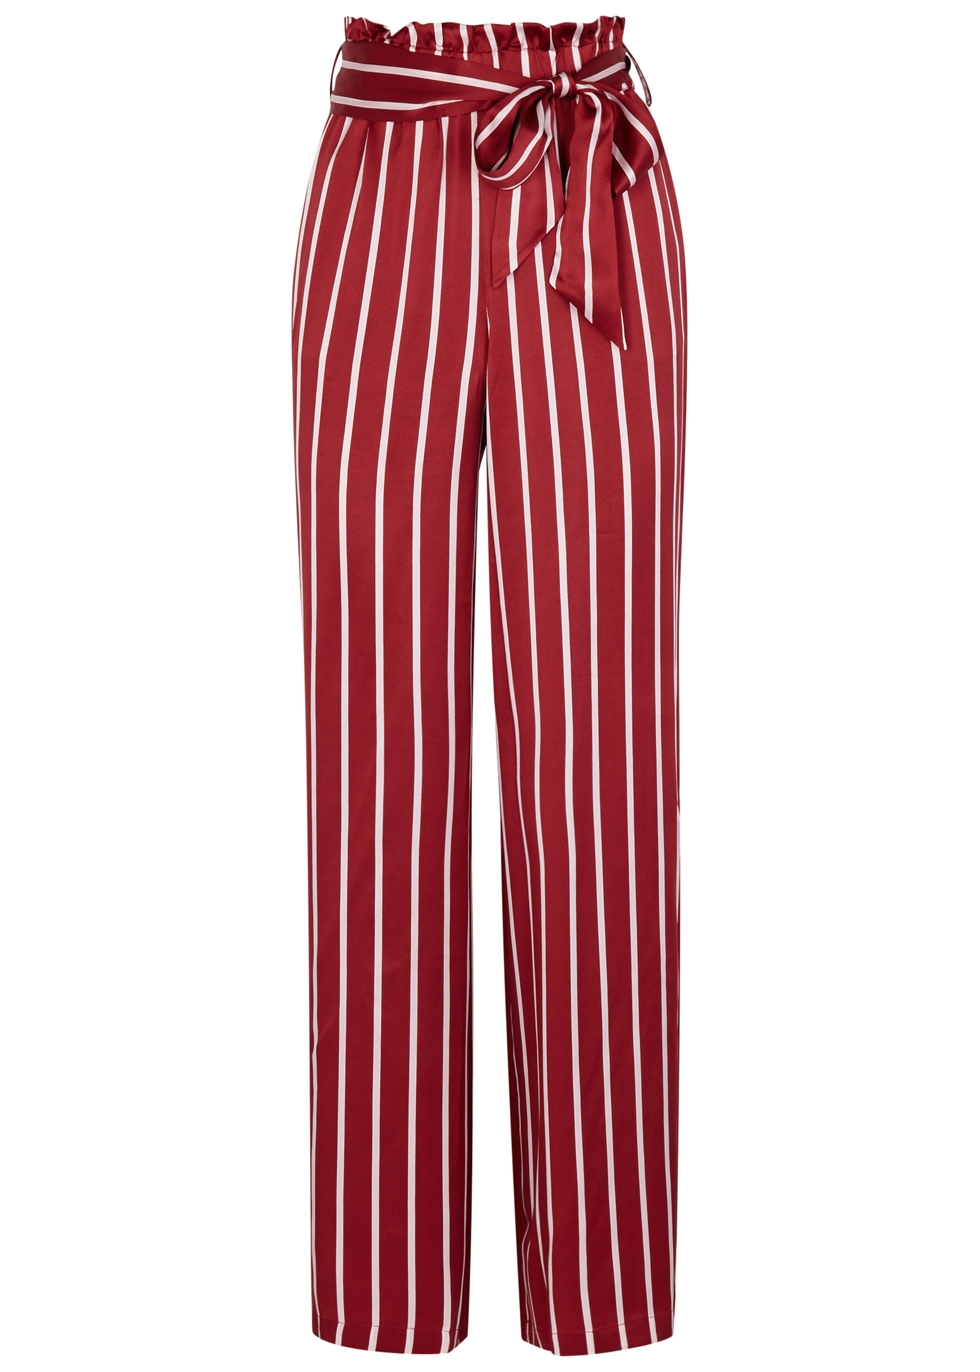 ASCENO Striped Silk Pyjama-Style Trousers in Red